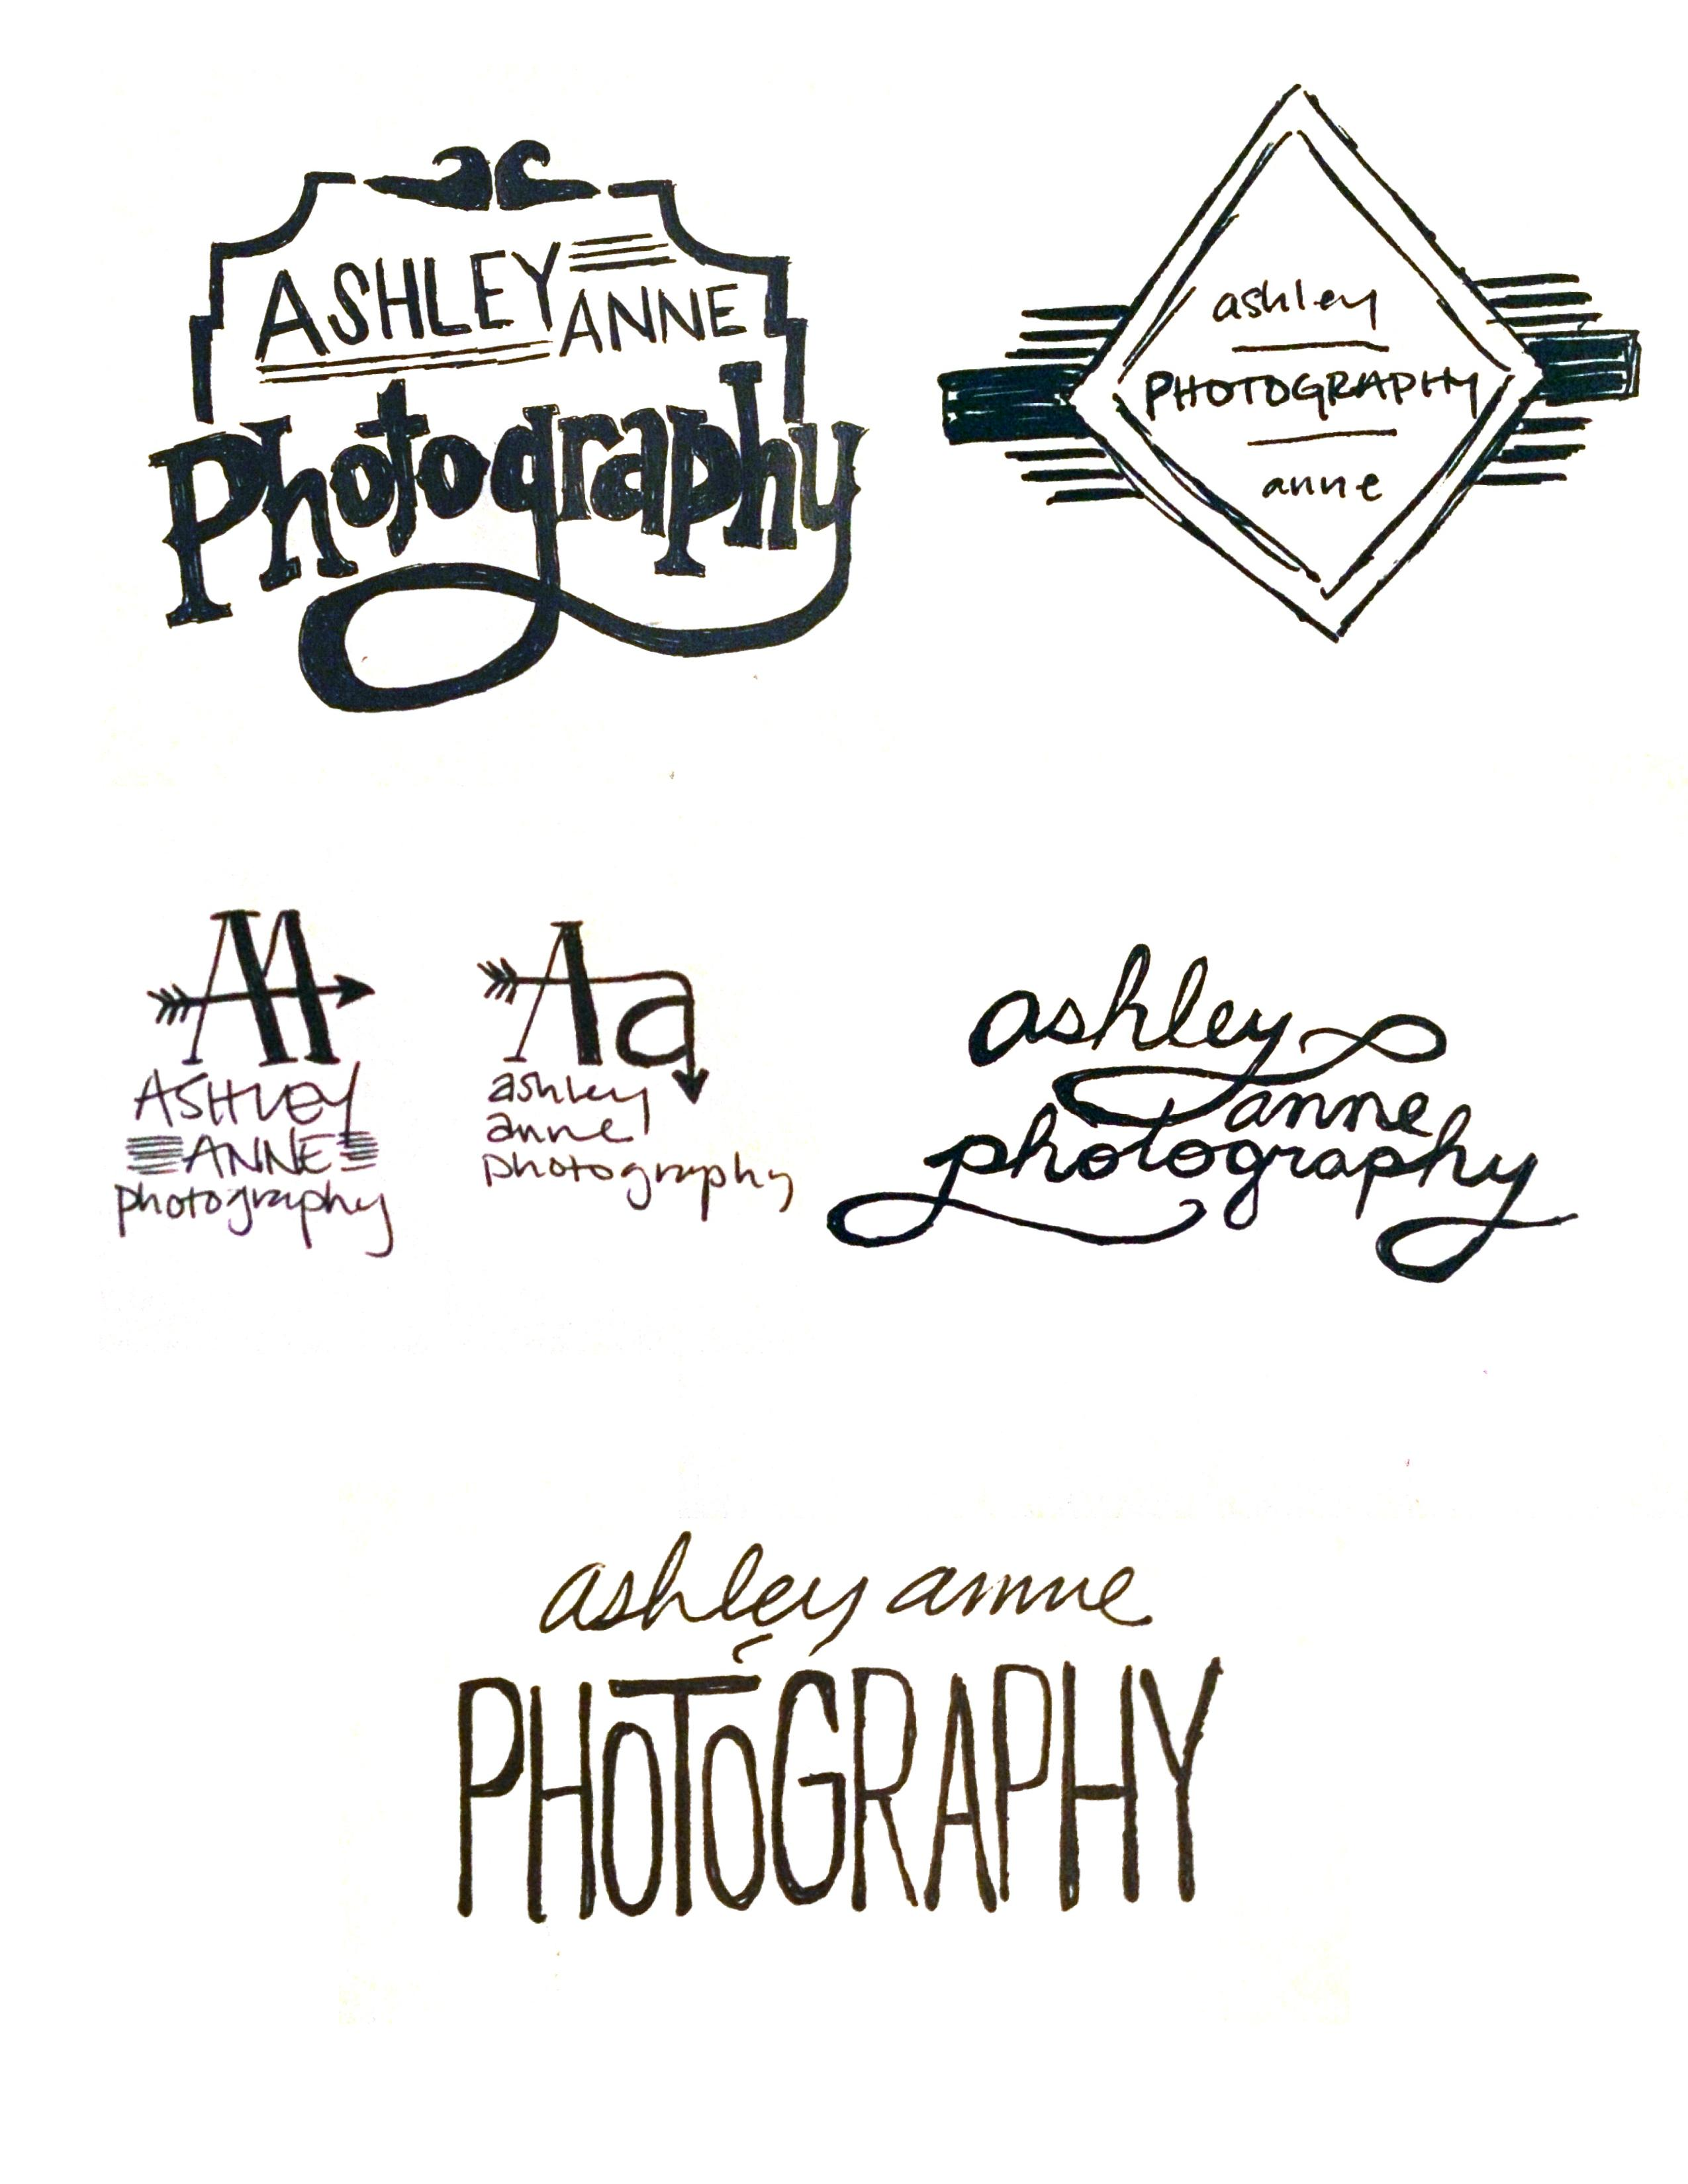 Photography company brandscheming - image 2 - student project